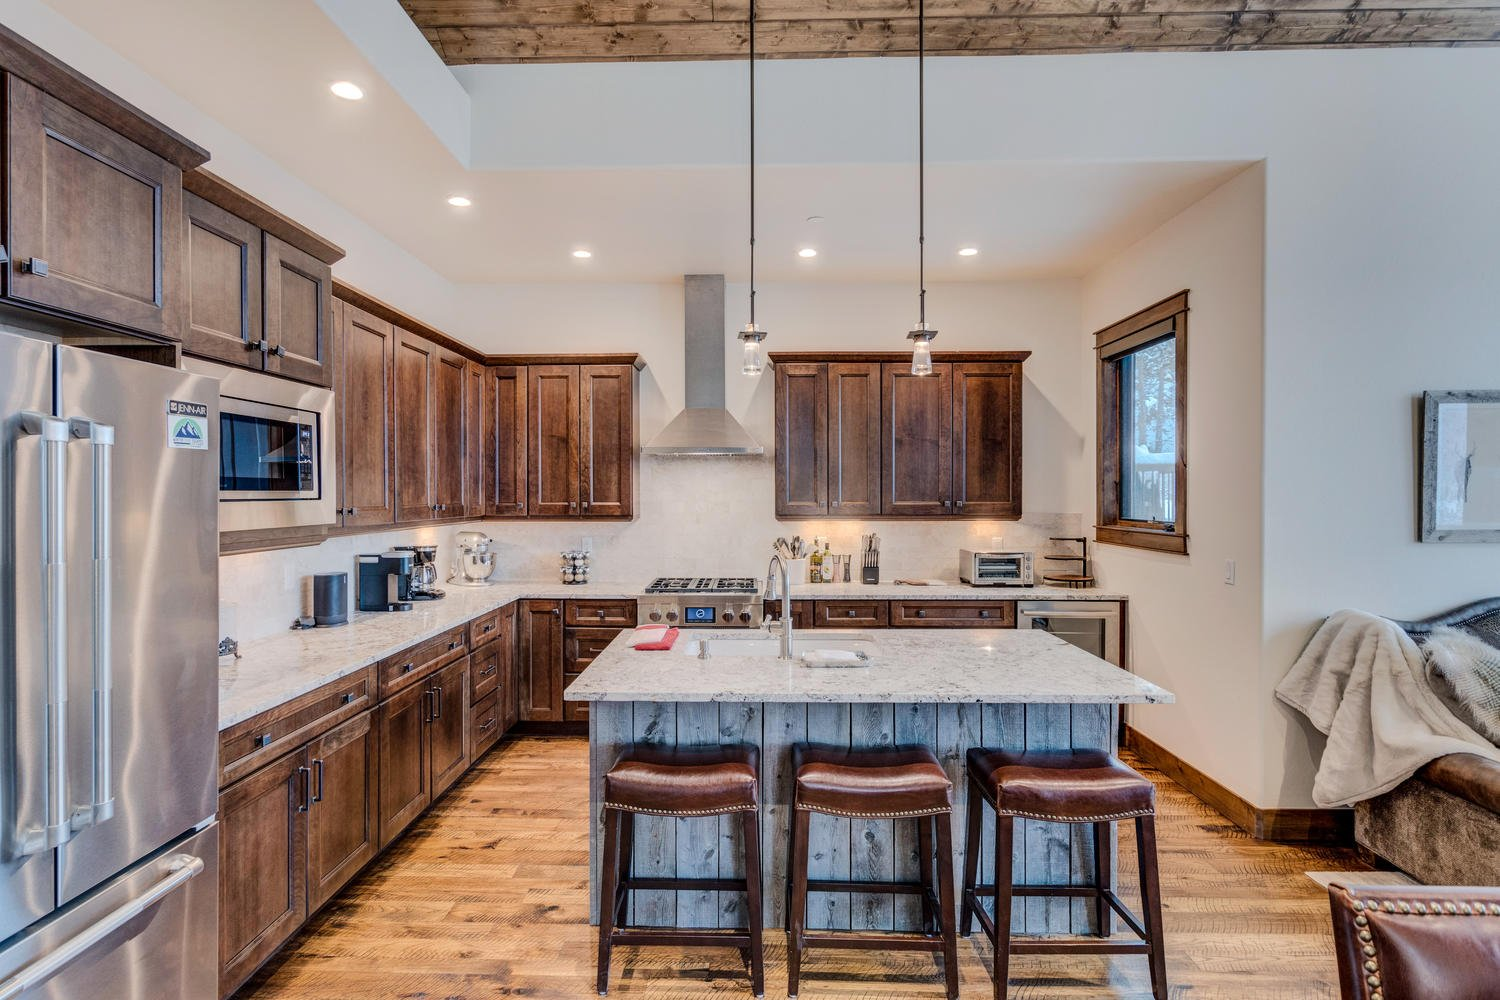 Fully equipped kitchen with large island area.